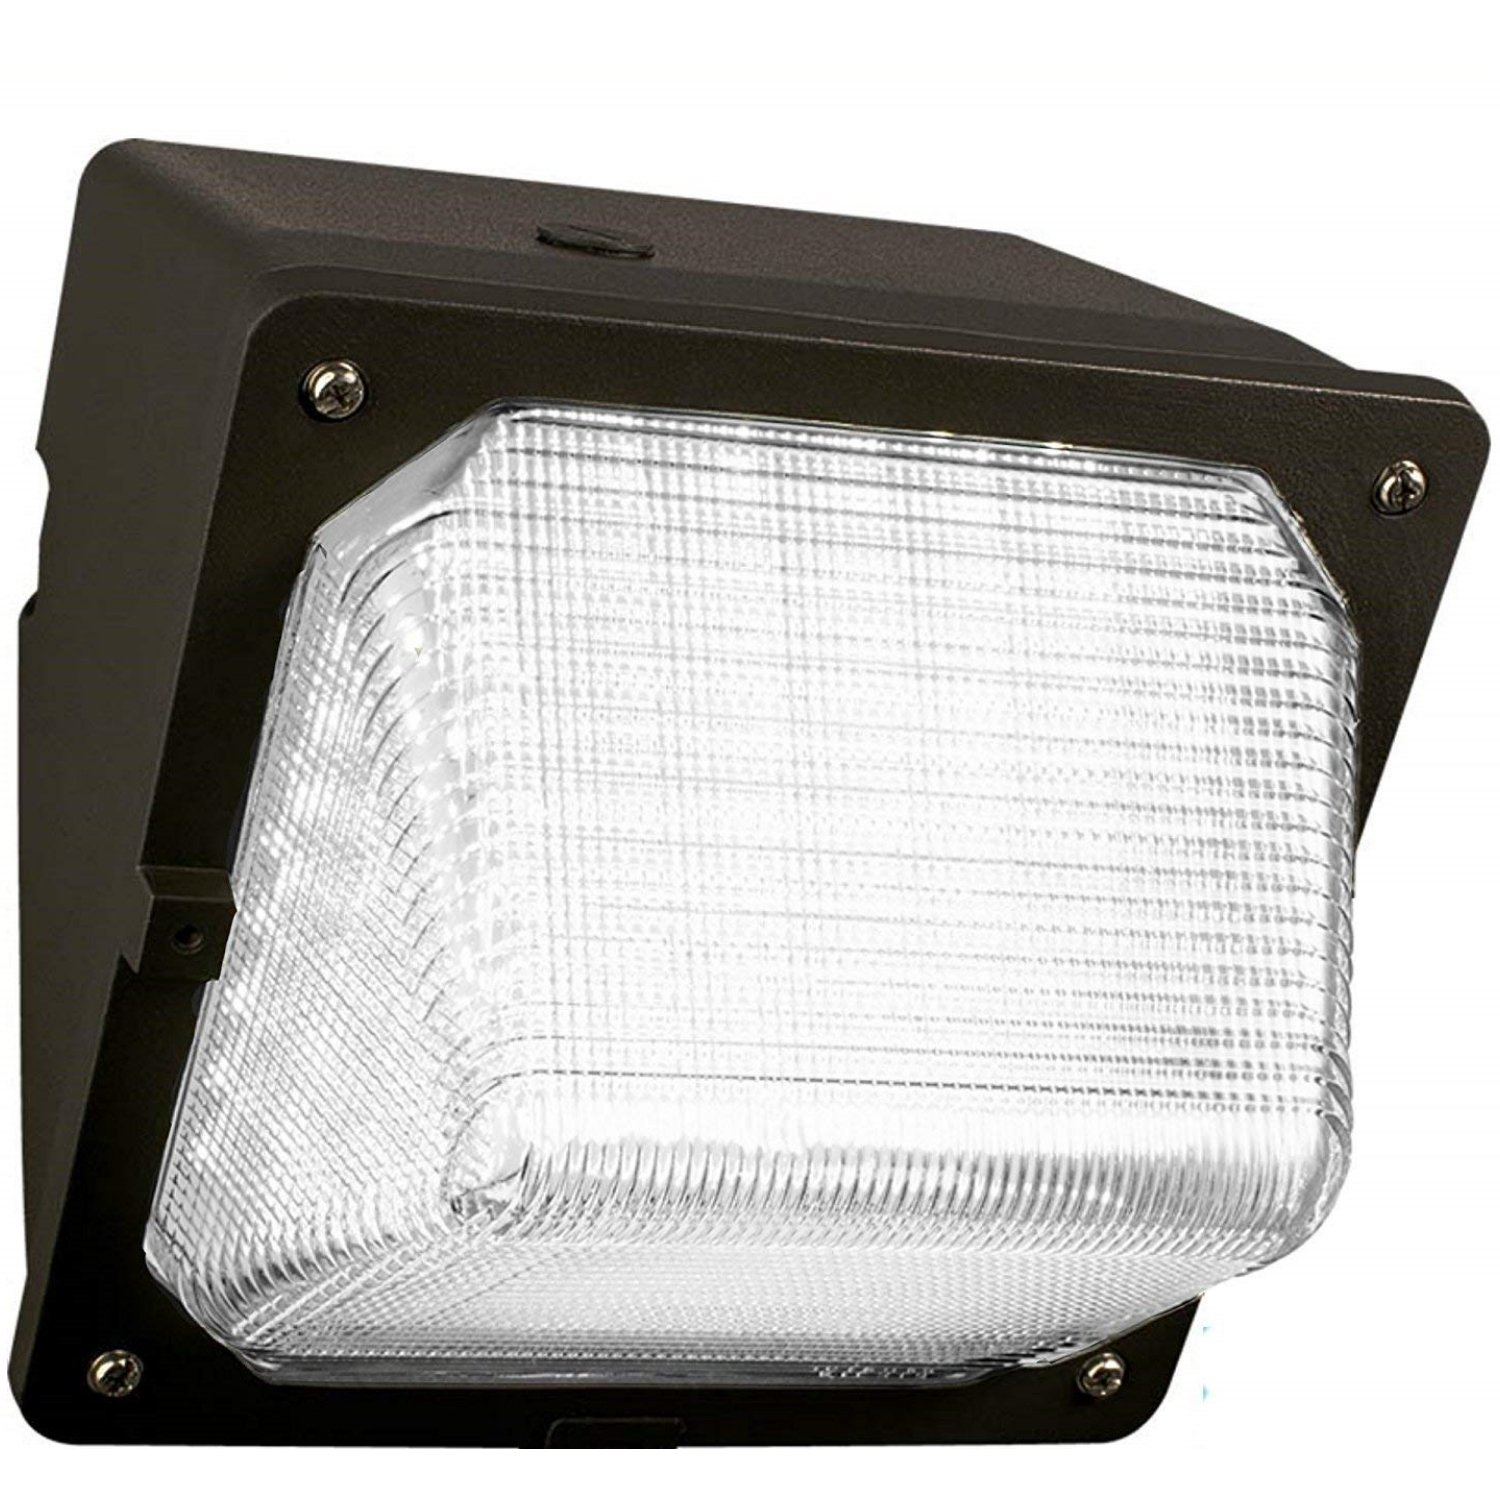 30W LED Wall Pack (100-150 Watt HPS/HID Replacement) 5000K (Daylight) 3100 Lumens, Outdoor Lighting Fixture, UL and DLC Listed